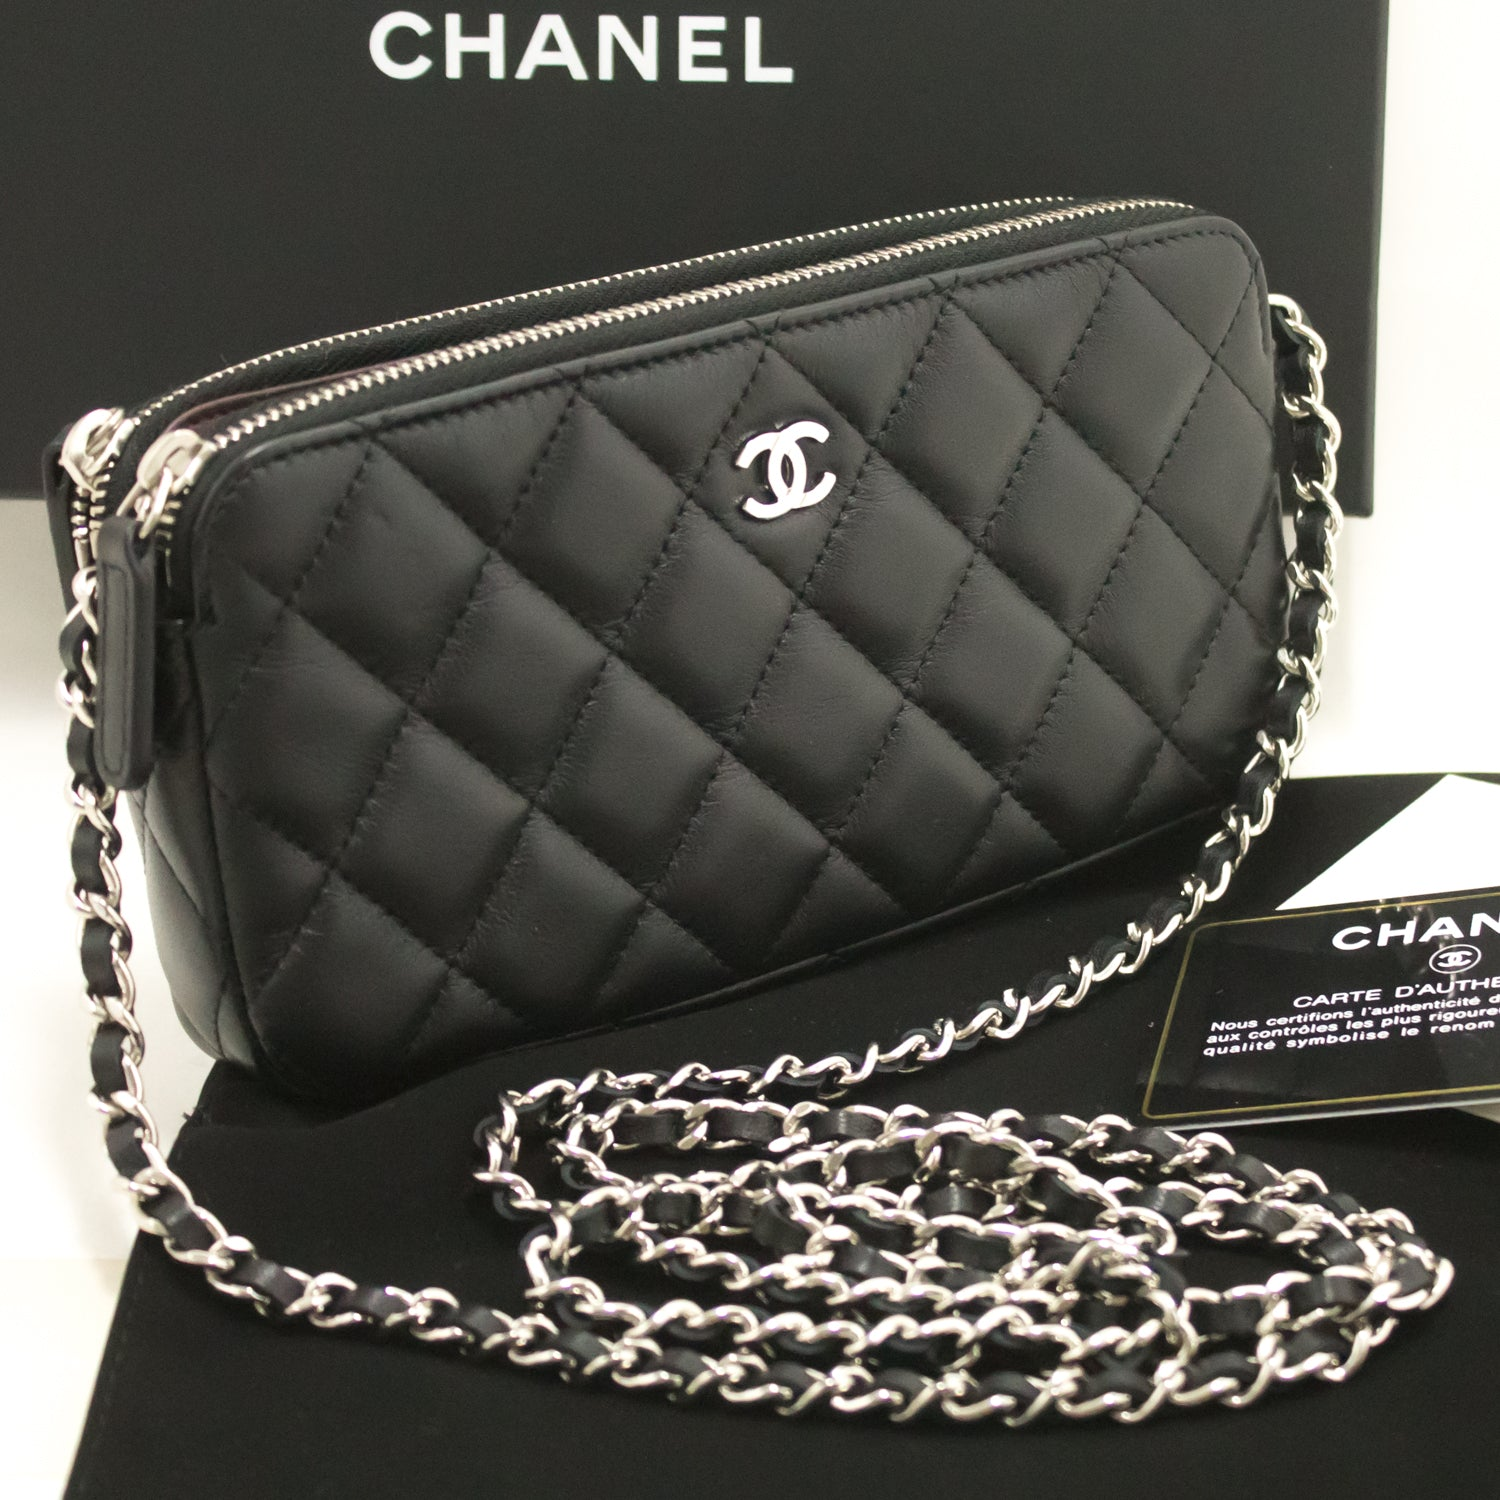 a5f95b8e1c3c ... CHANEL Lambskin Wallet On Chain WOC Double Zip Chain Shoulder Bag L02- Chanel-hannari ...